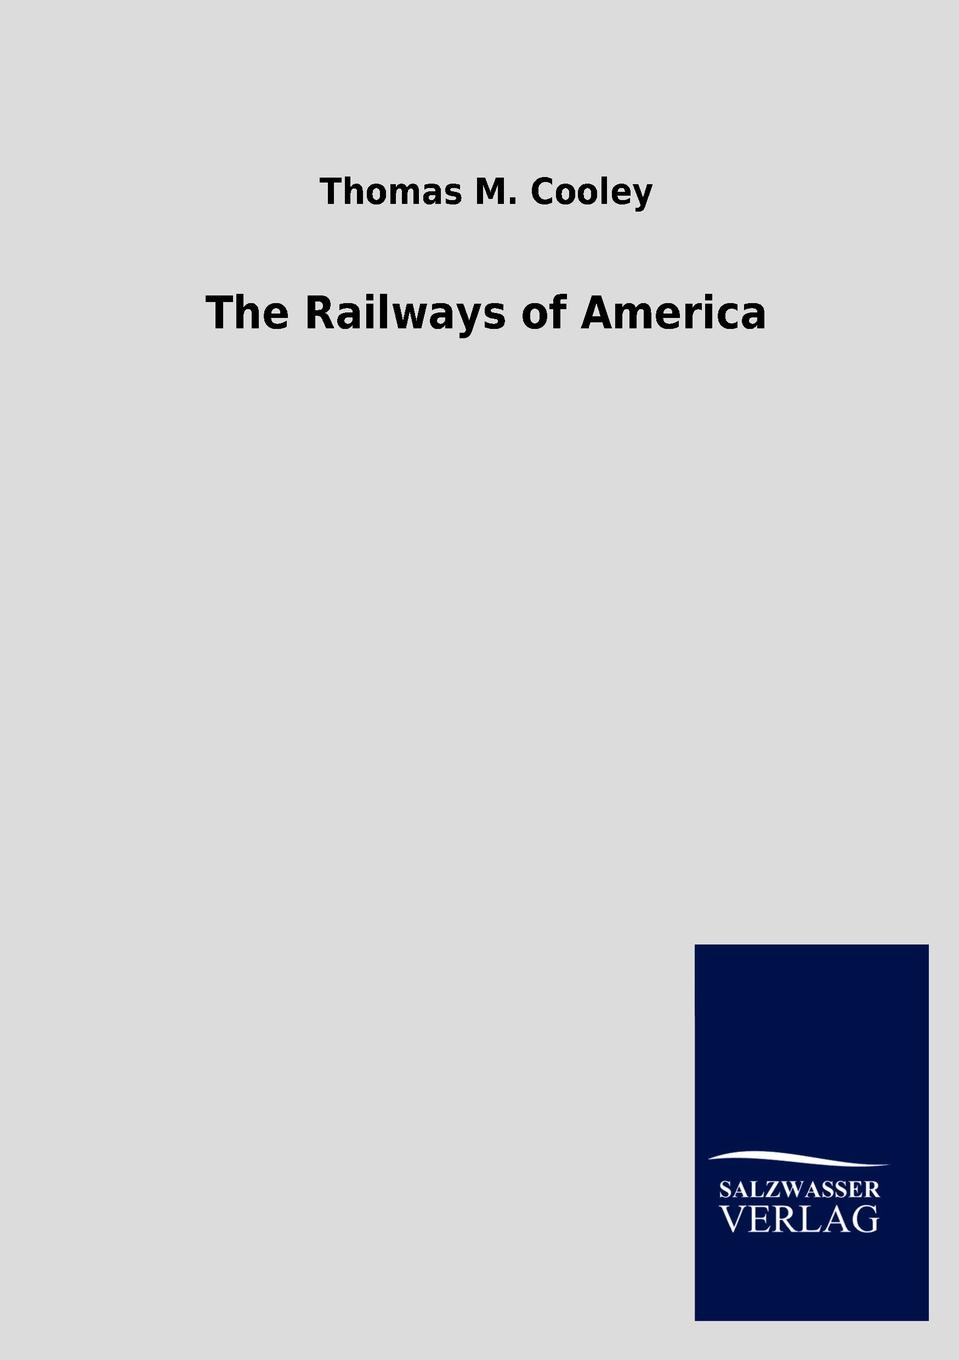 Thomas M. Cooley The Railways of America